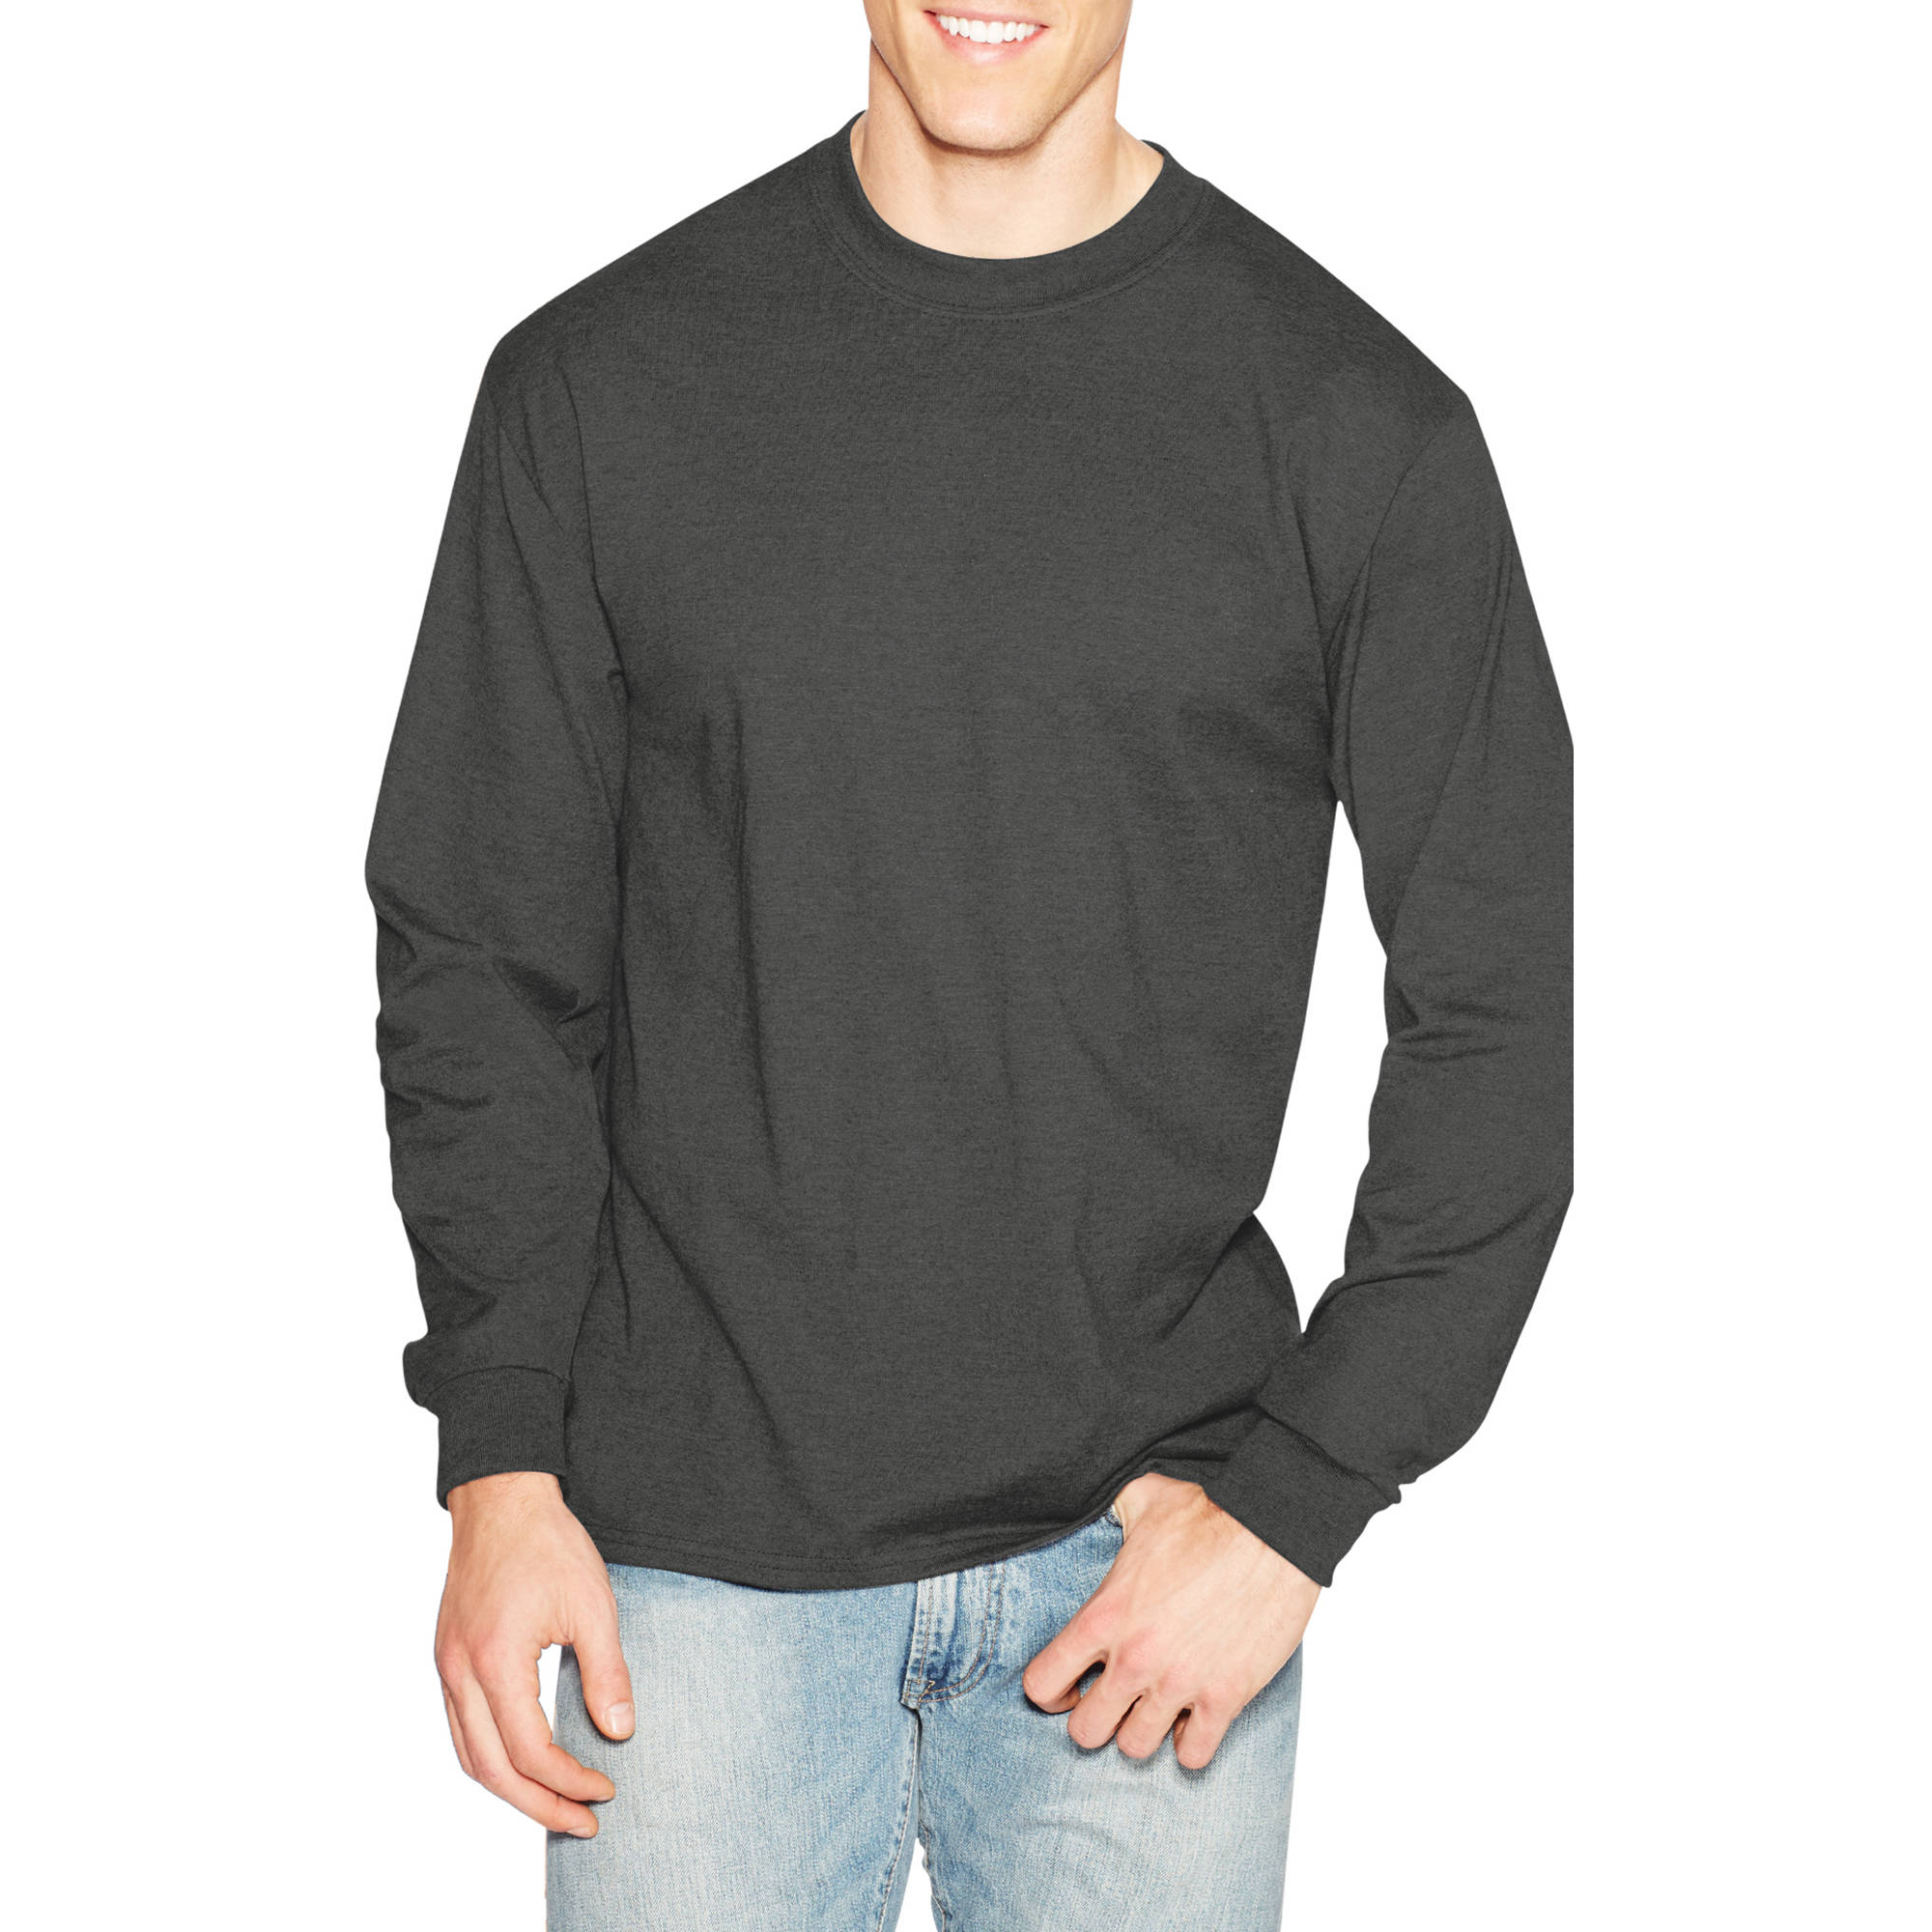 Hanes men s long sleeve t shirts artee shirt for Mens long sleeve white t shirt